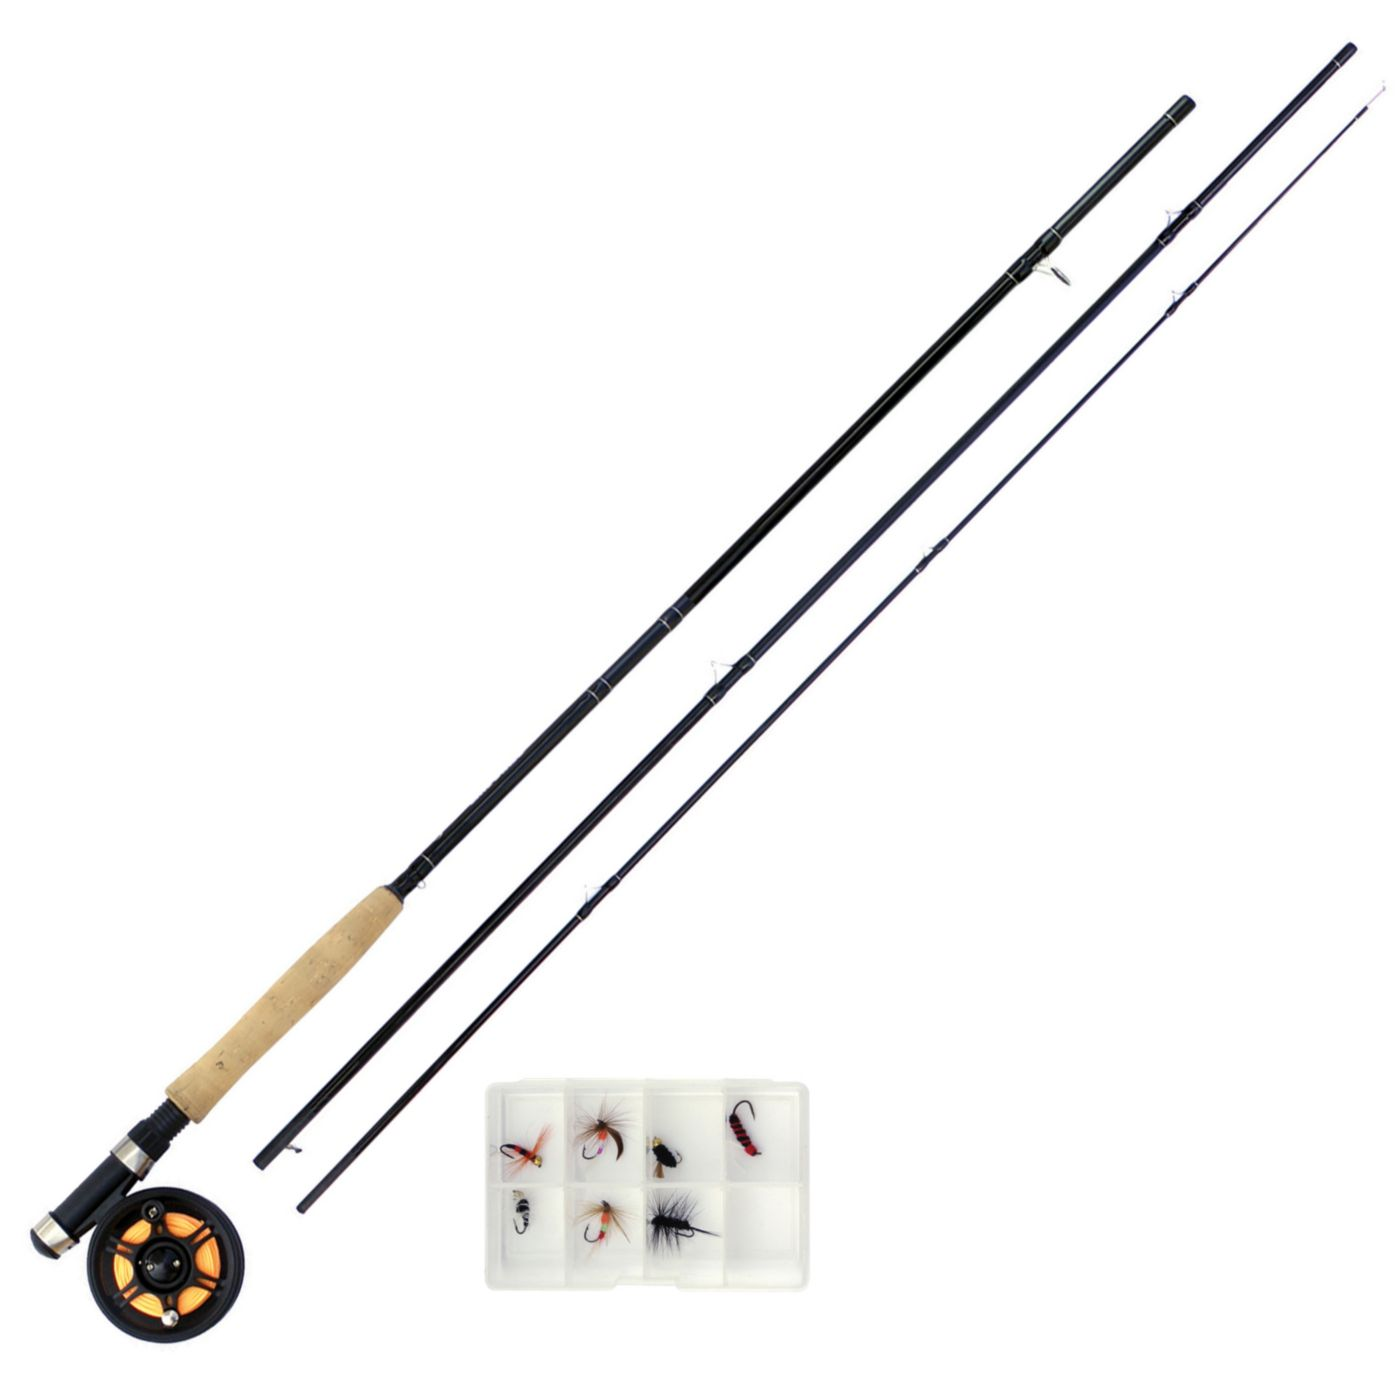 Quarrow Fine River Fully Loaded Fly Fishing Kit